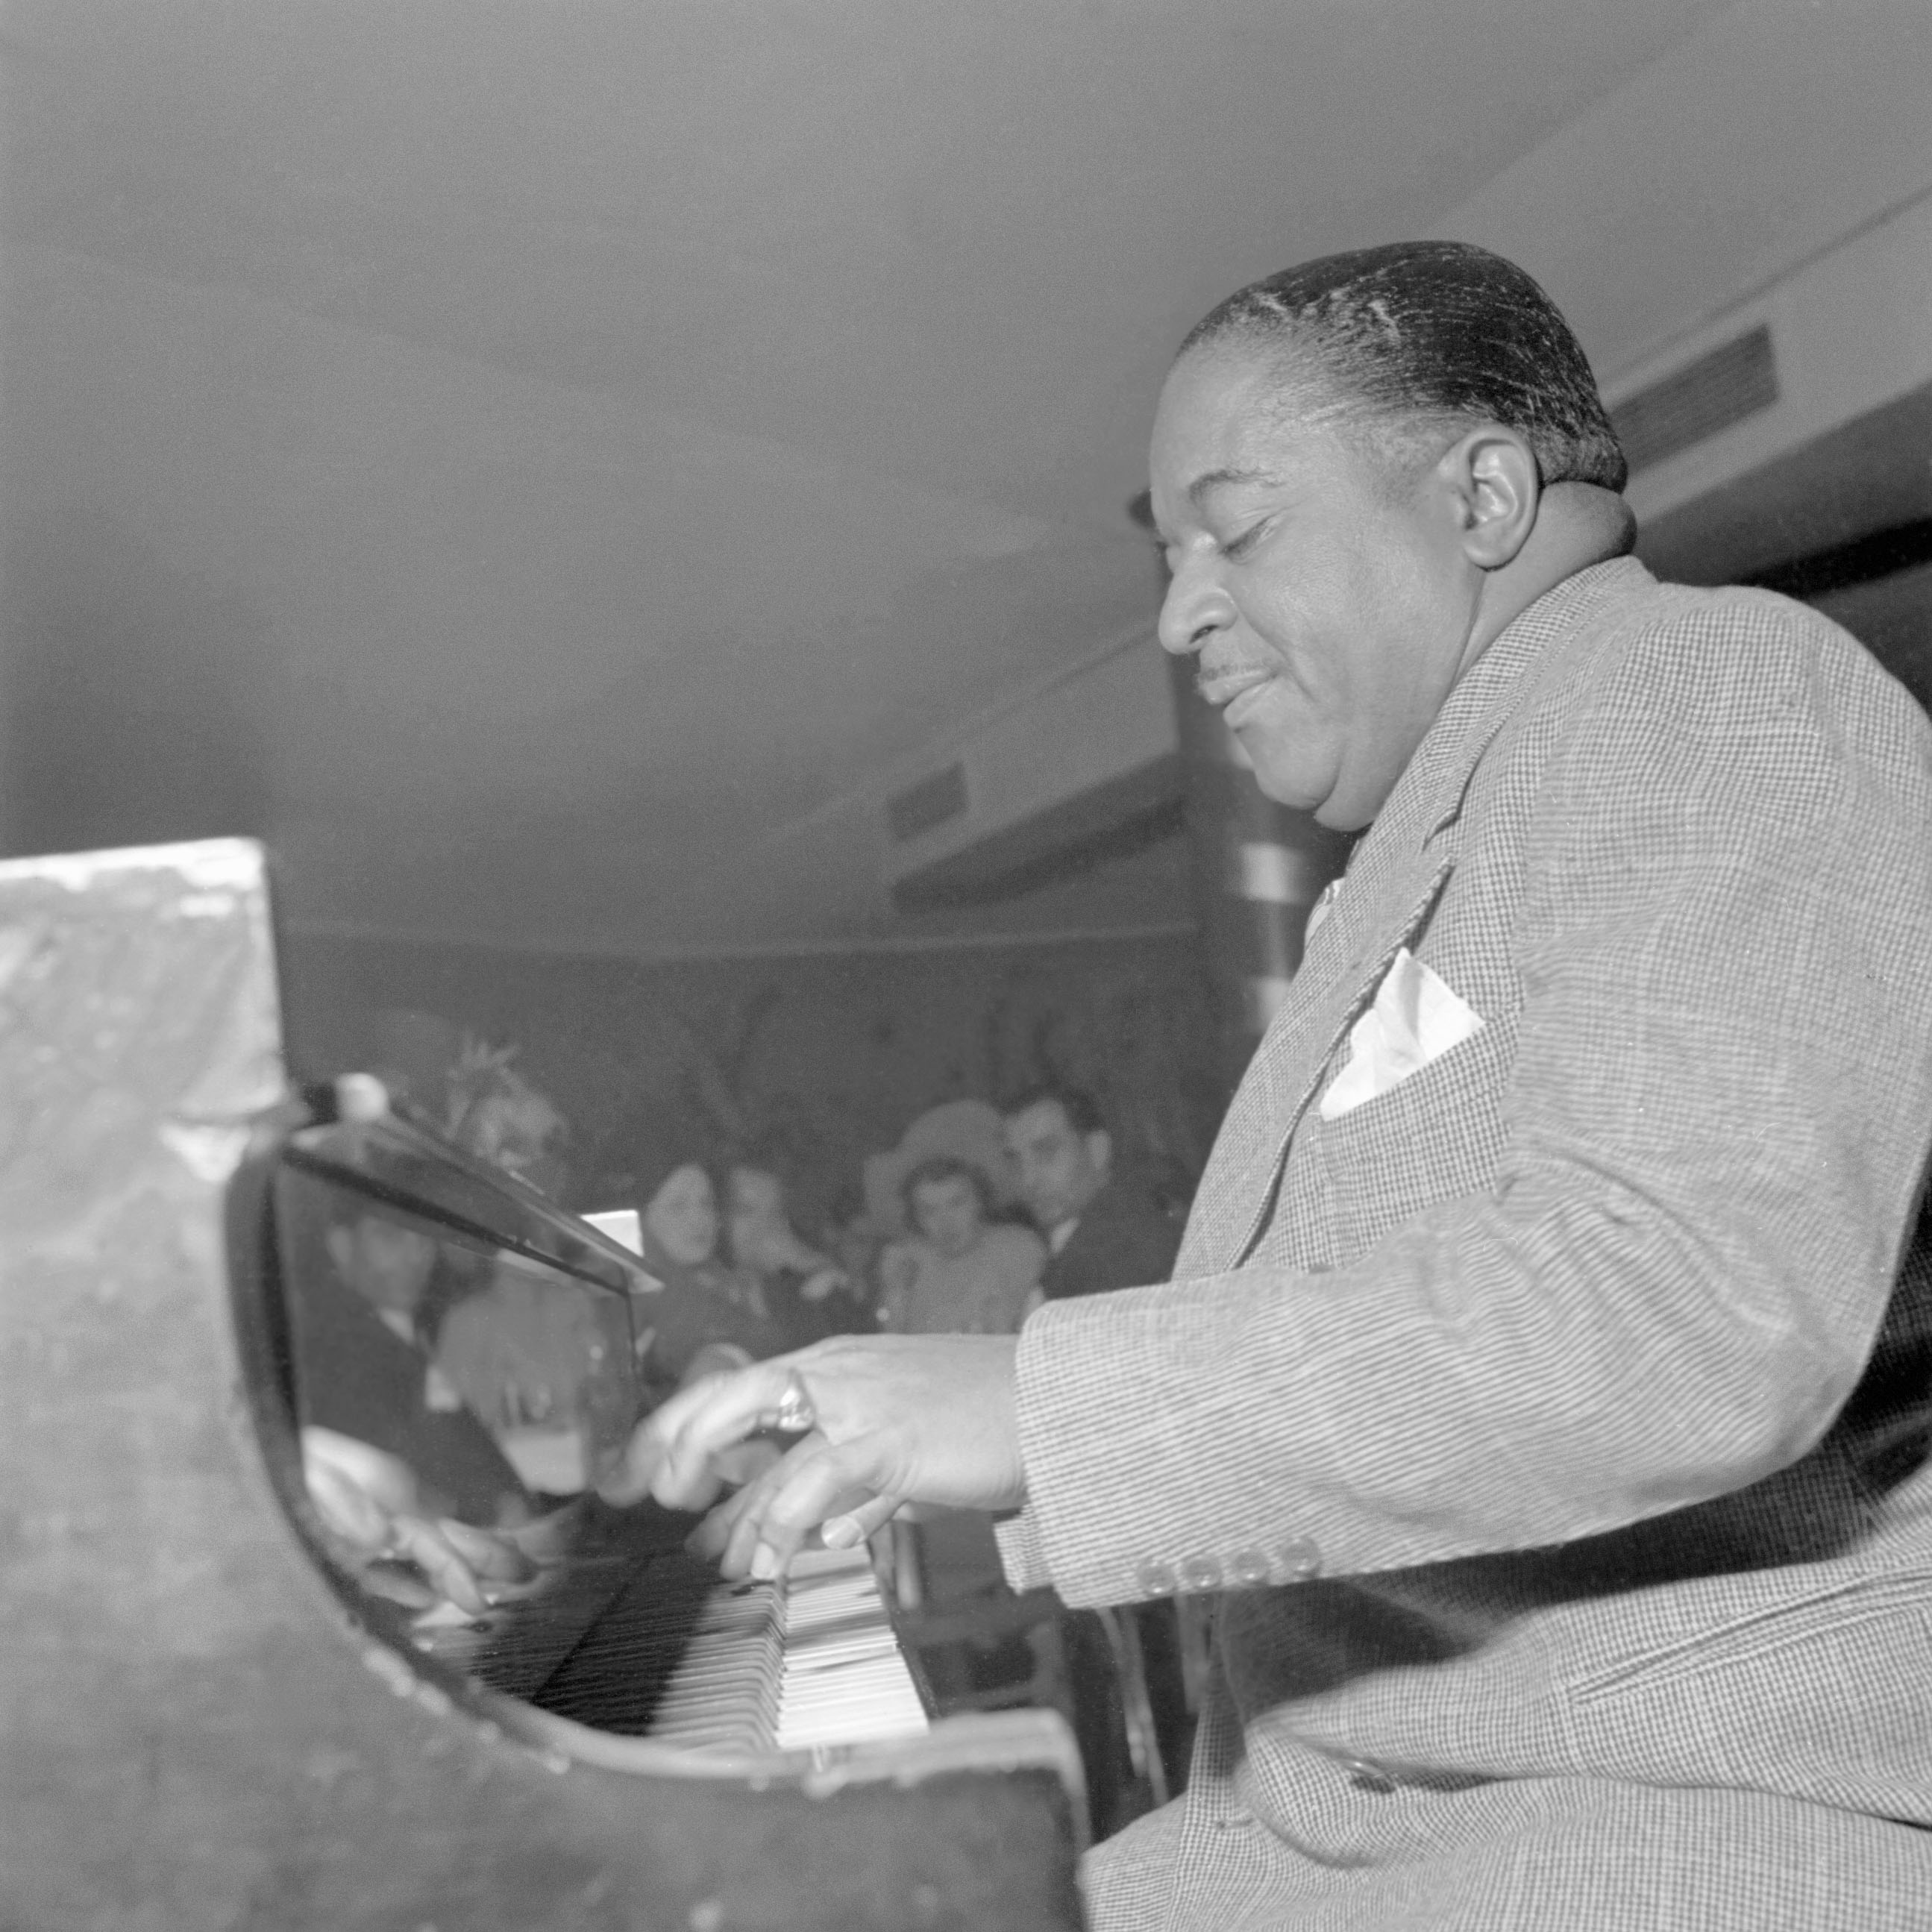 Jazz piano player Pete Johnson plays with his jazz orchestra in a New York City club in the fifties.